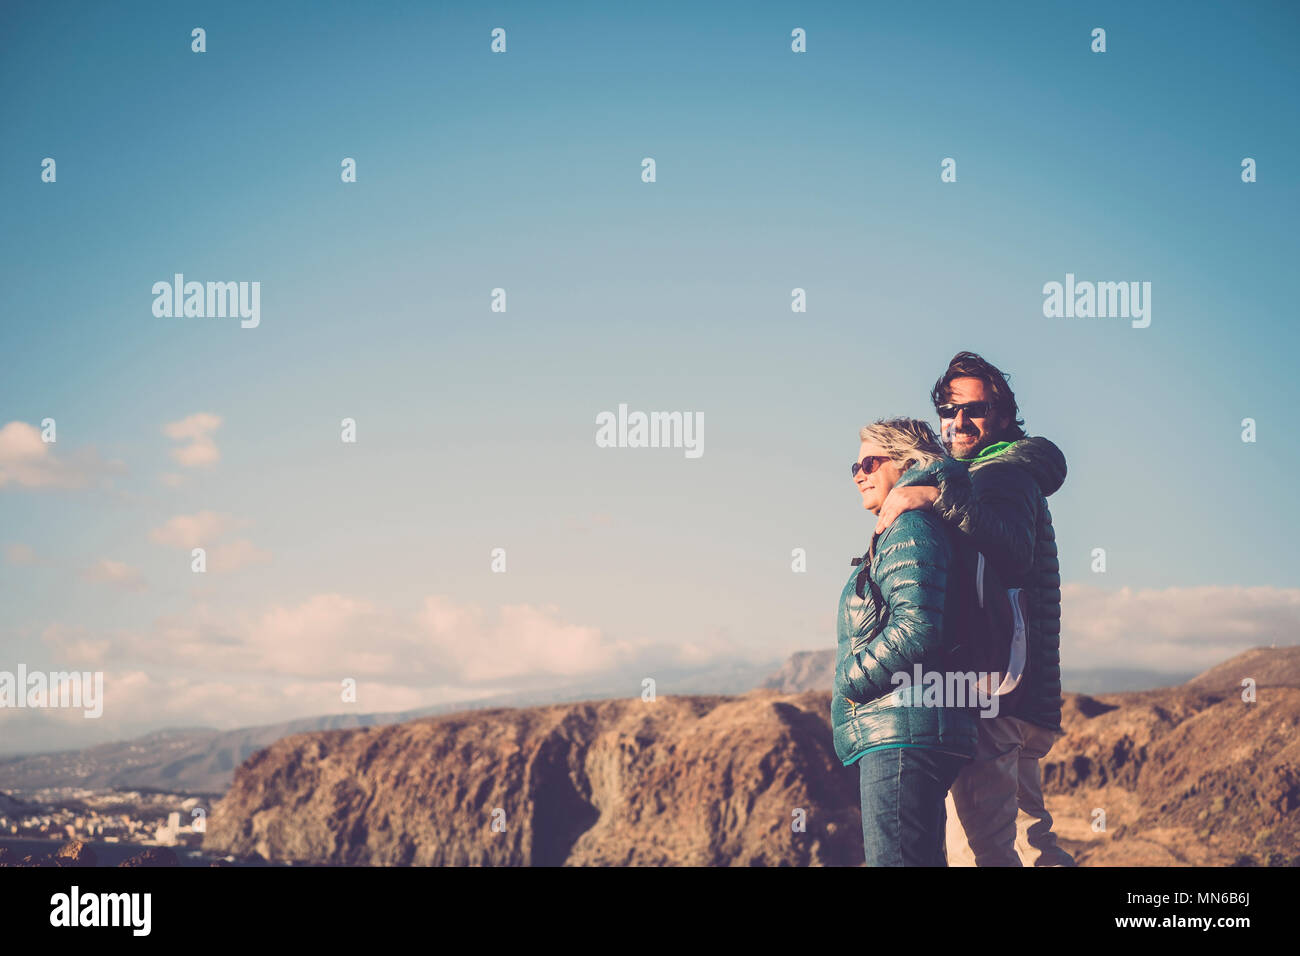 Mother with white hair and a 45 year old son spend time together smiling, surrounded by unspoiled nature. Between sea and mountain hiking and trekking - Stock Image